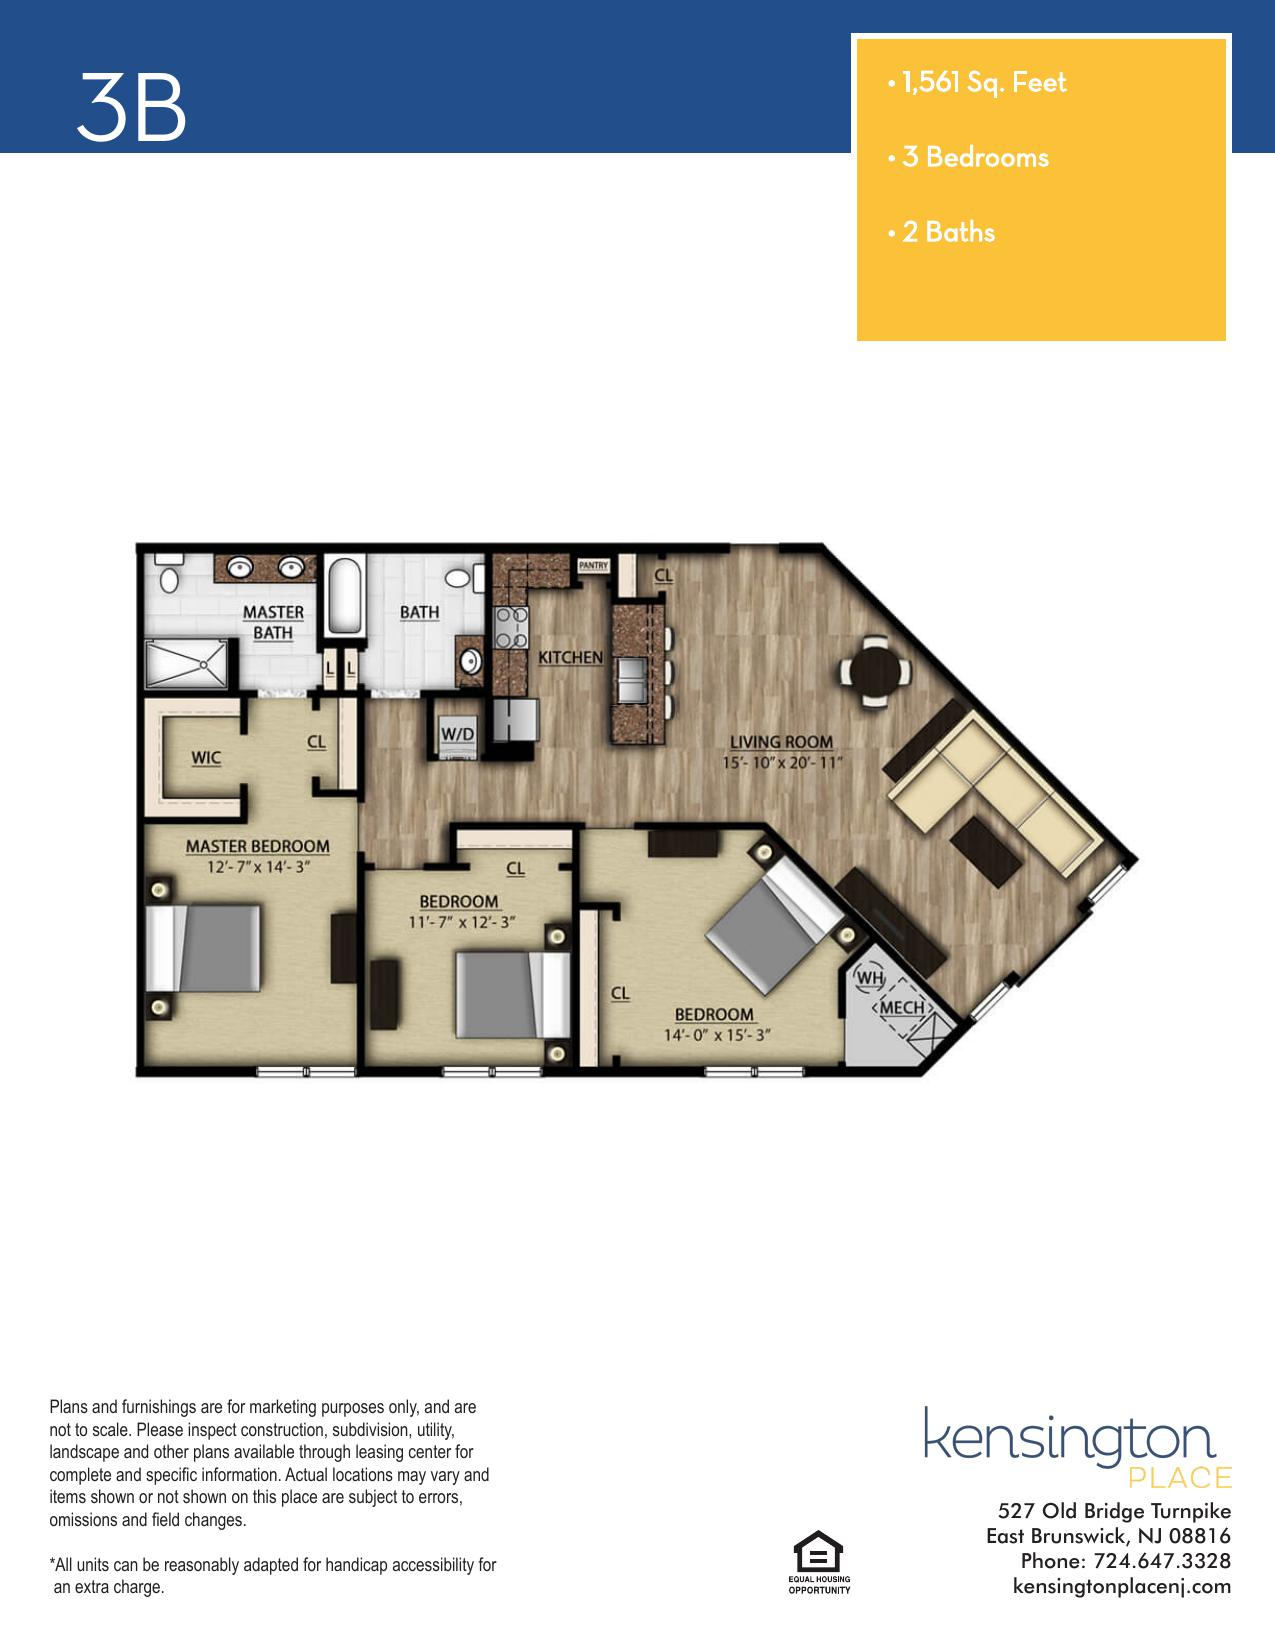 Kensington Place Apartment Floor Plan 3B